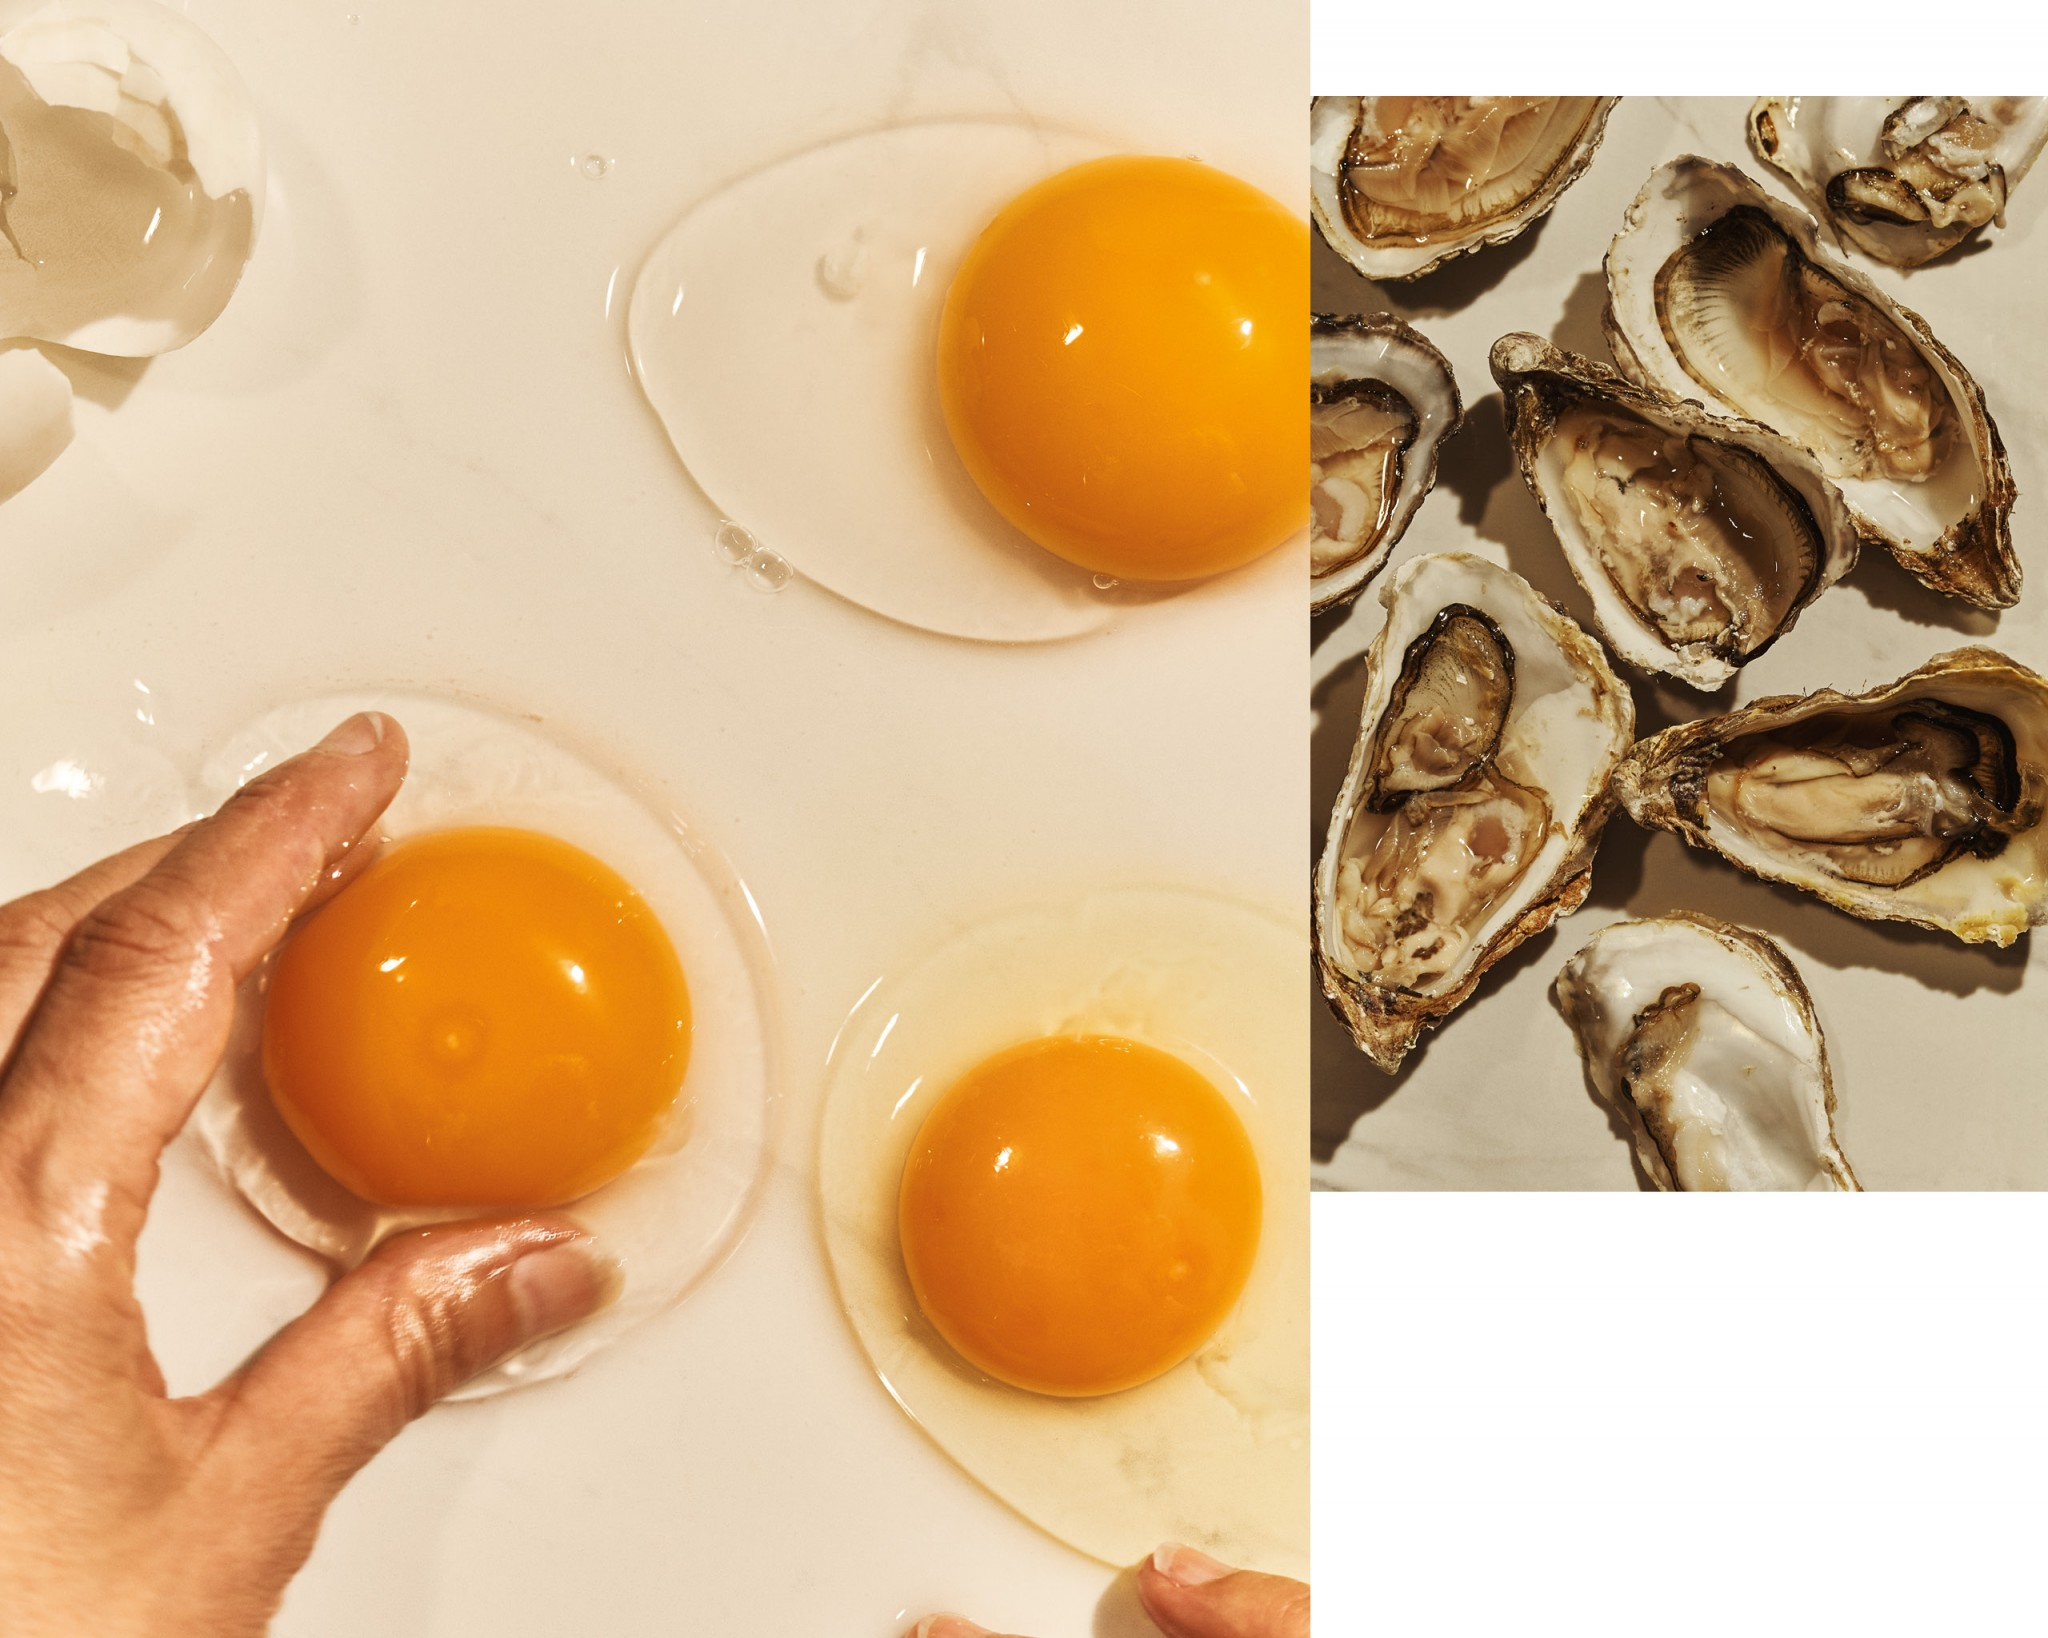 Two closeup image of eggs and oysters